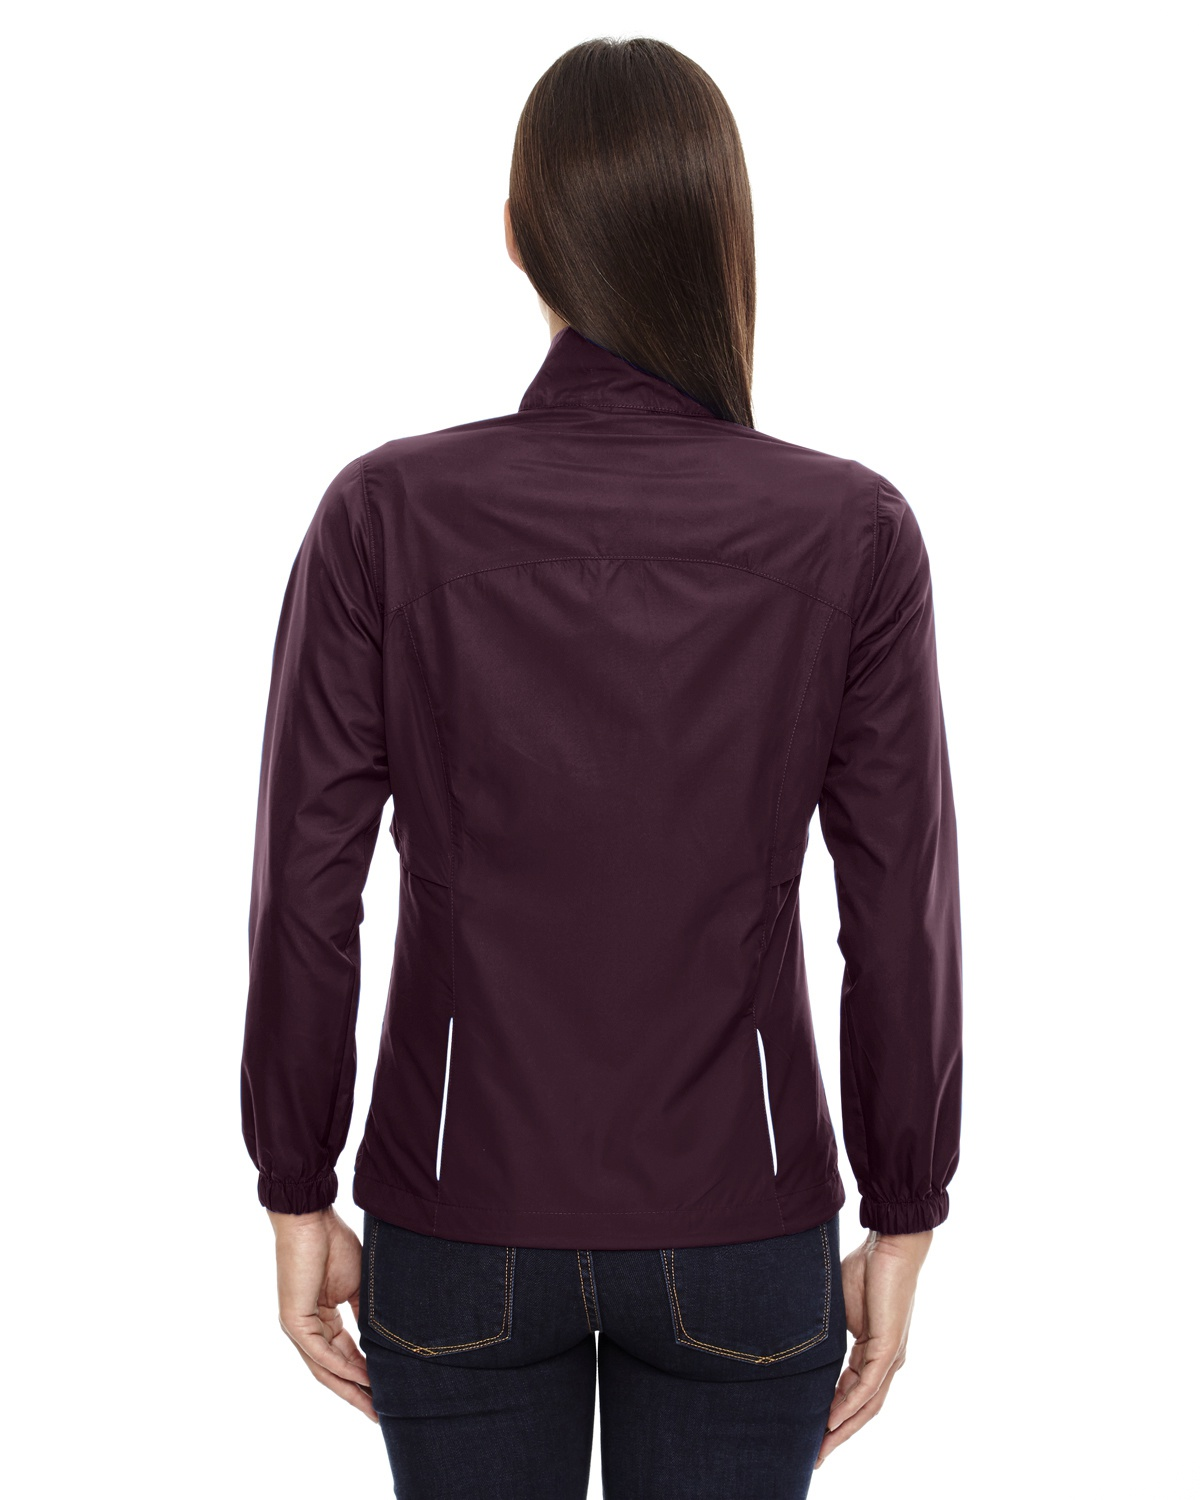 'Ash City - Core 365 78183 Ladies' Motivate Unlined Lightweight Jacket'